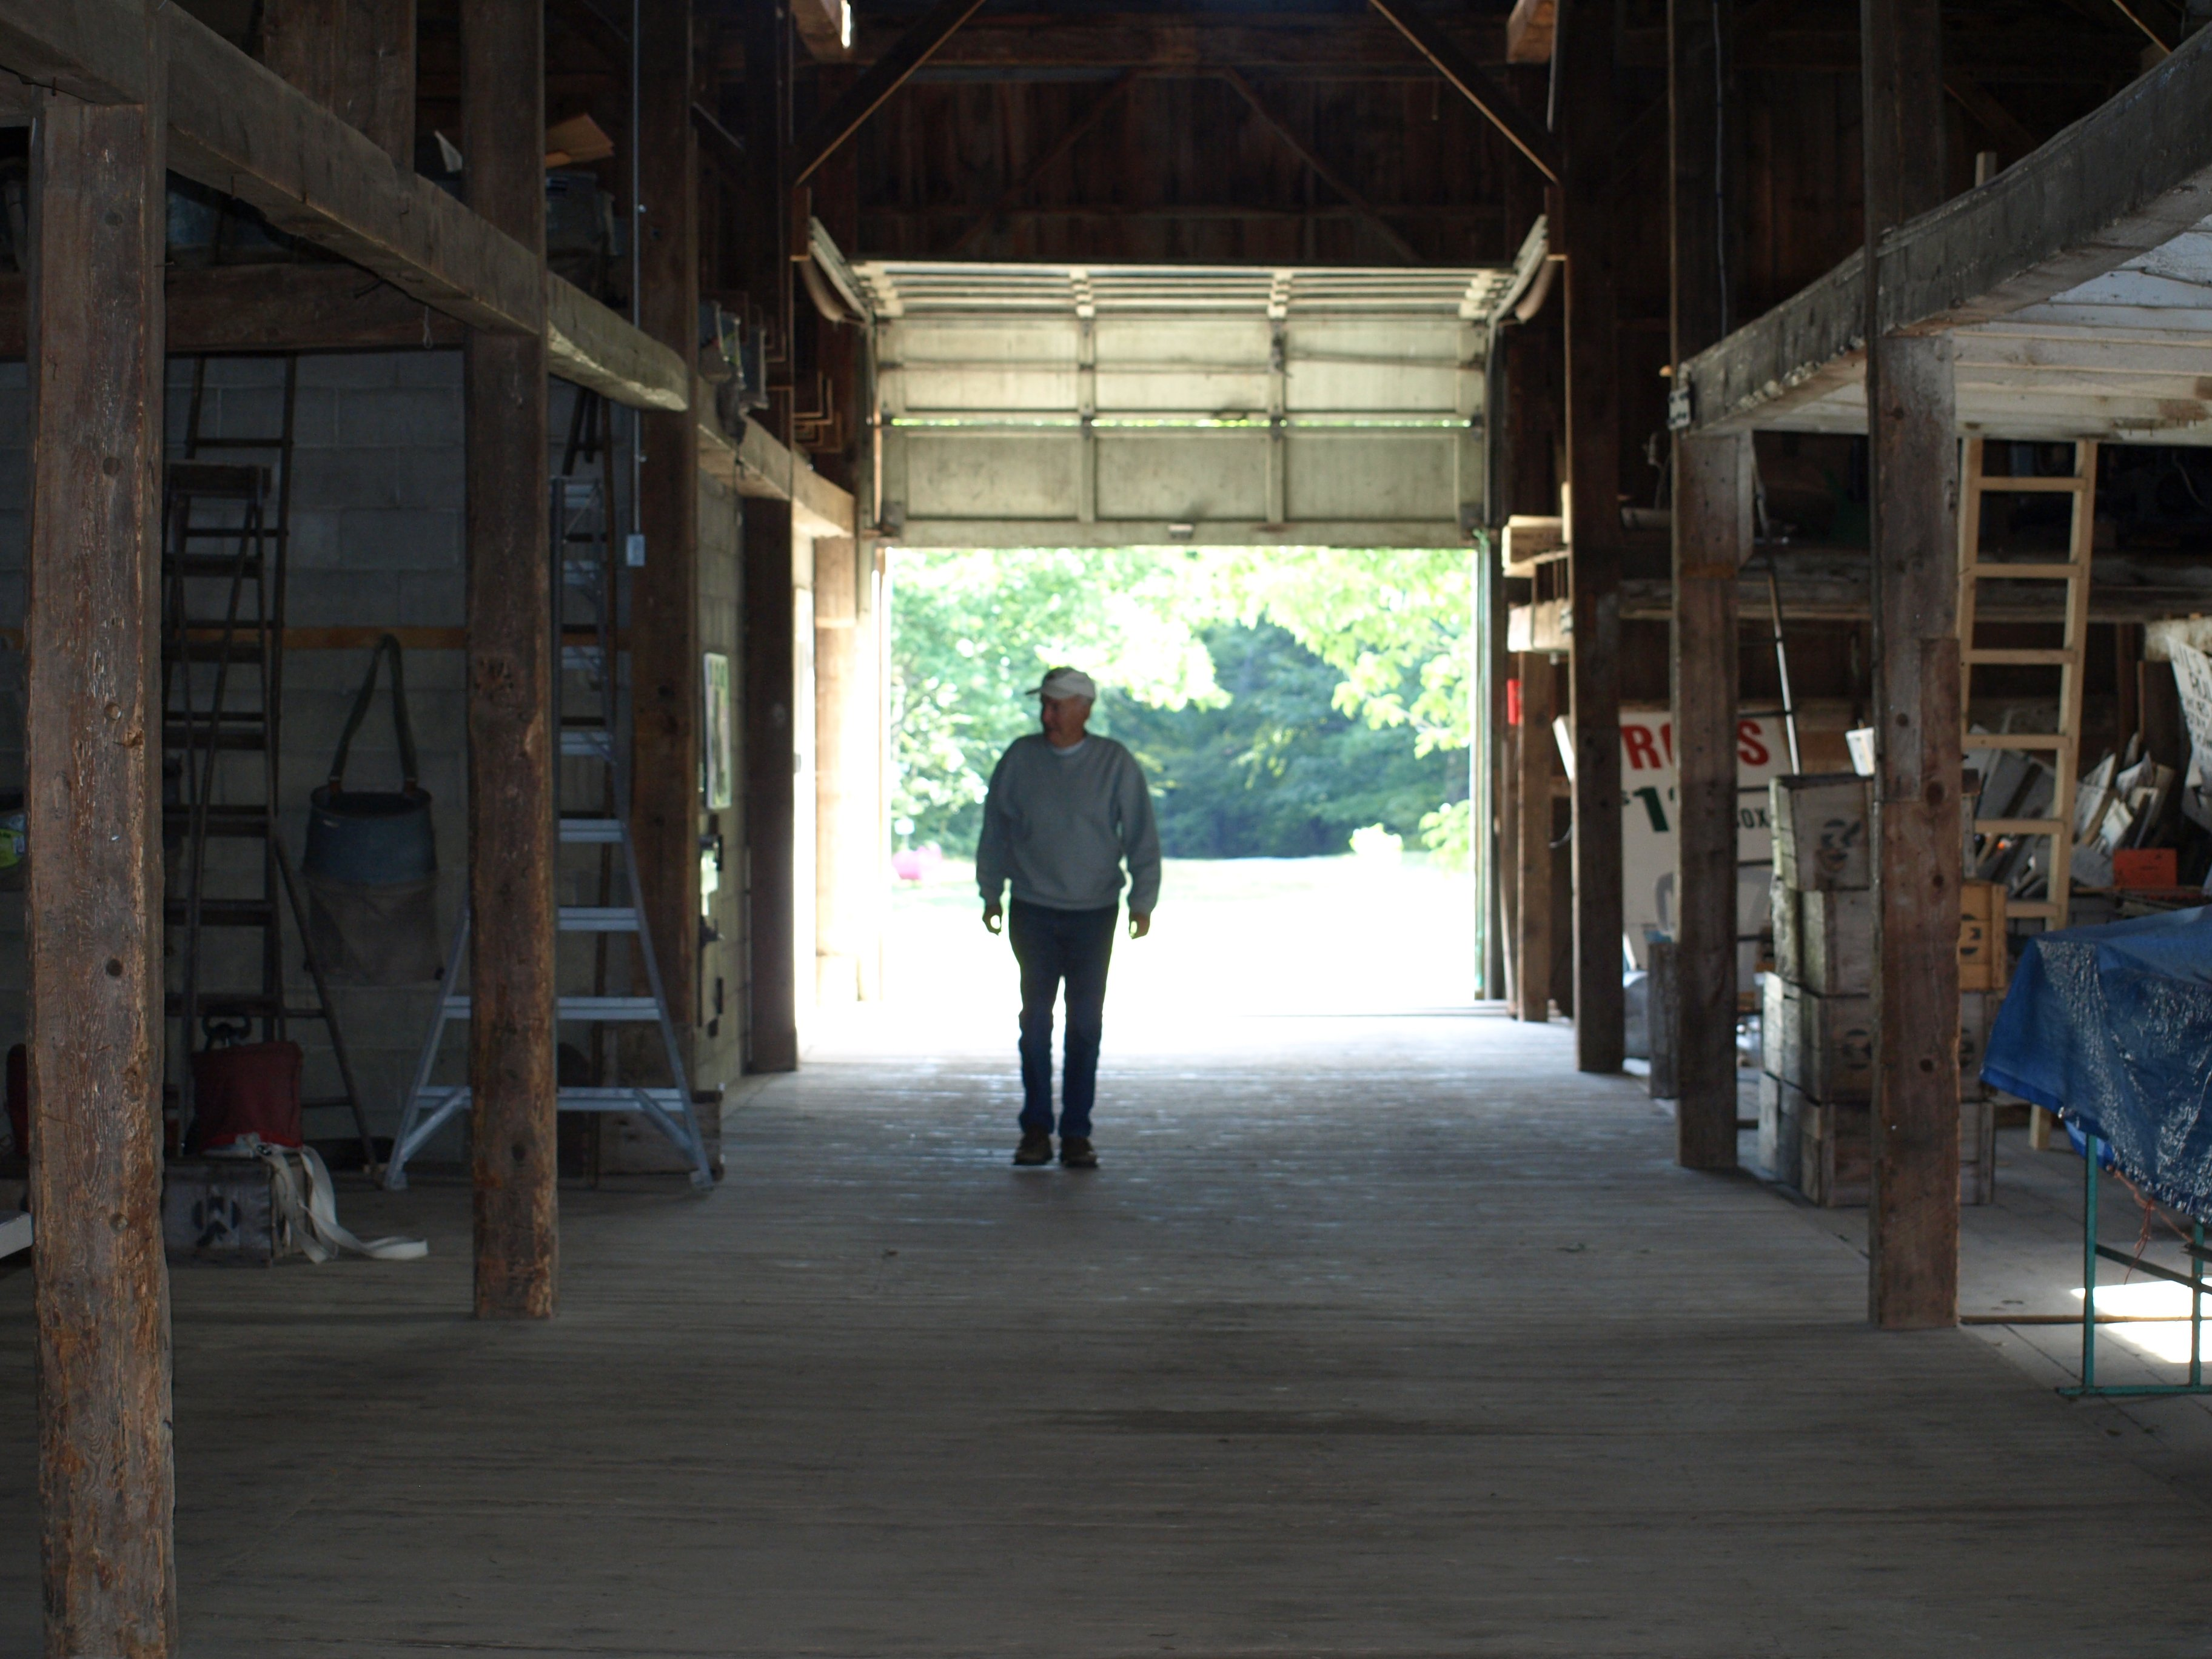 Mr. McDougal walking through the barn